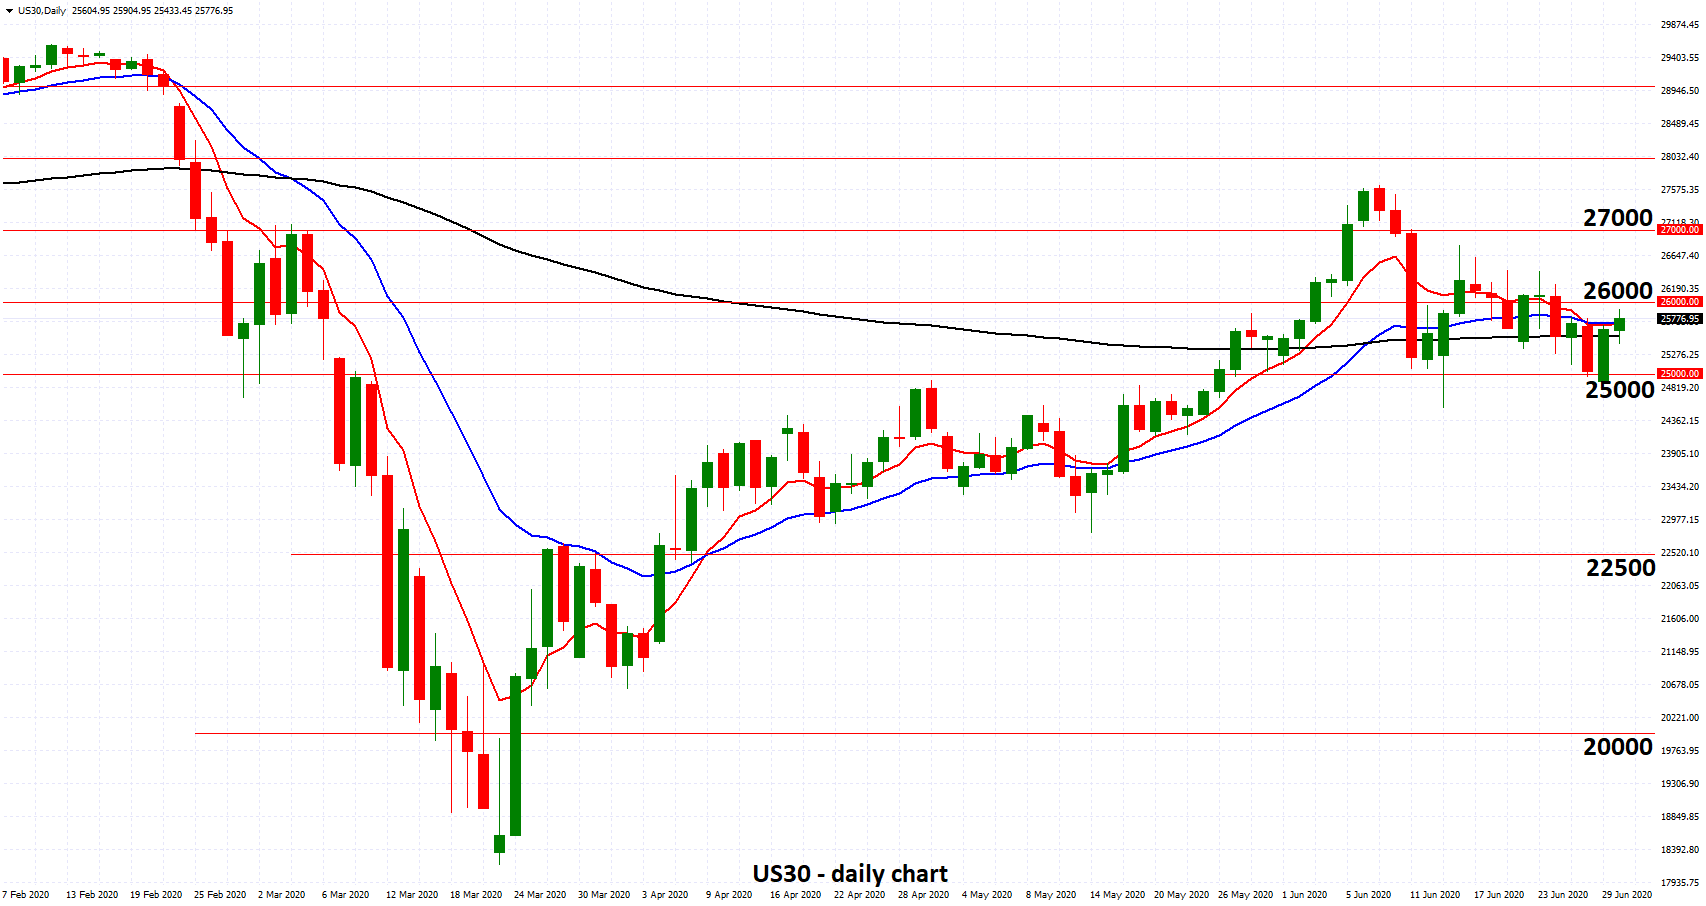 US30 - Enjoying Solid Support from 25000 as Recovery Path is extraordinarily uncertain